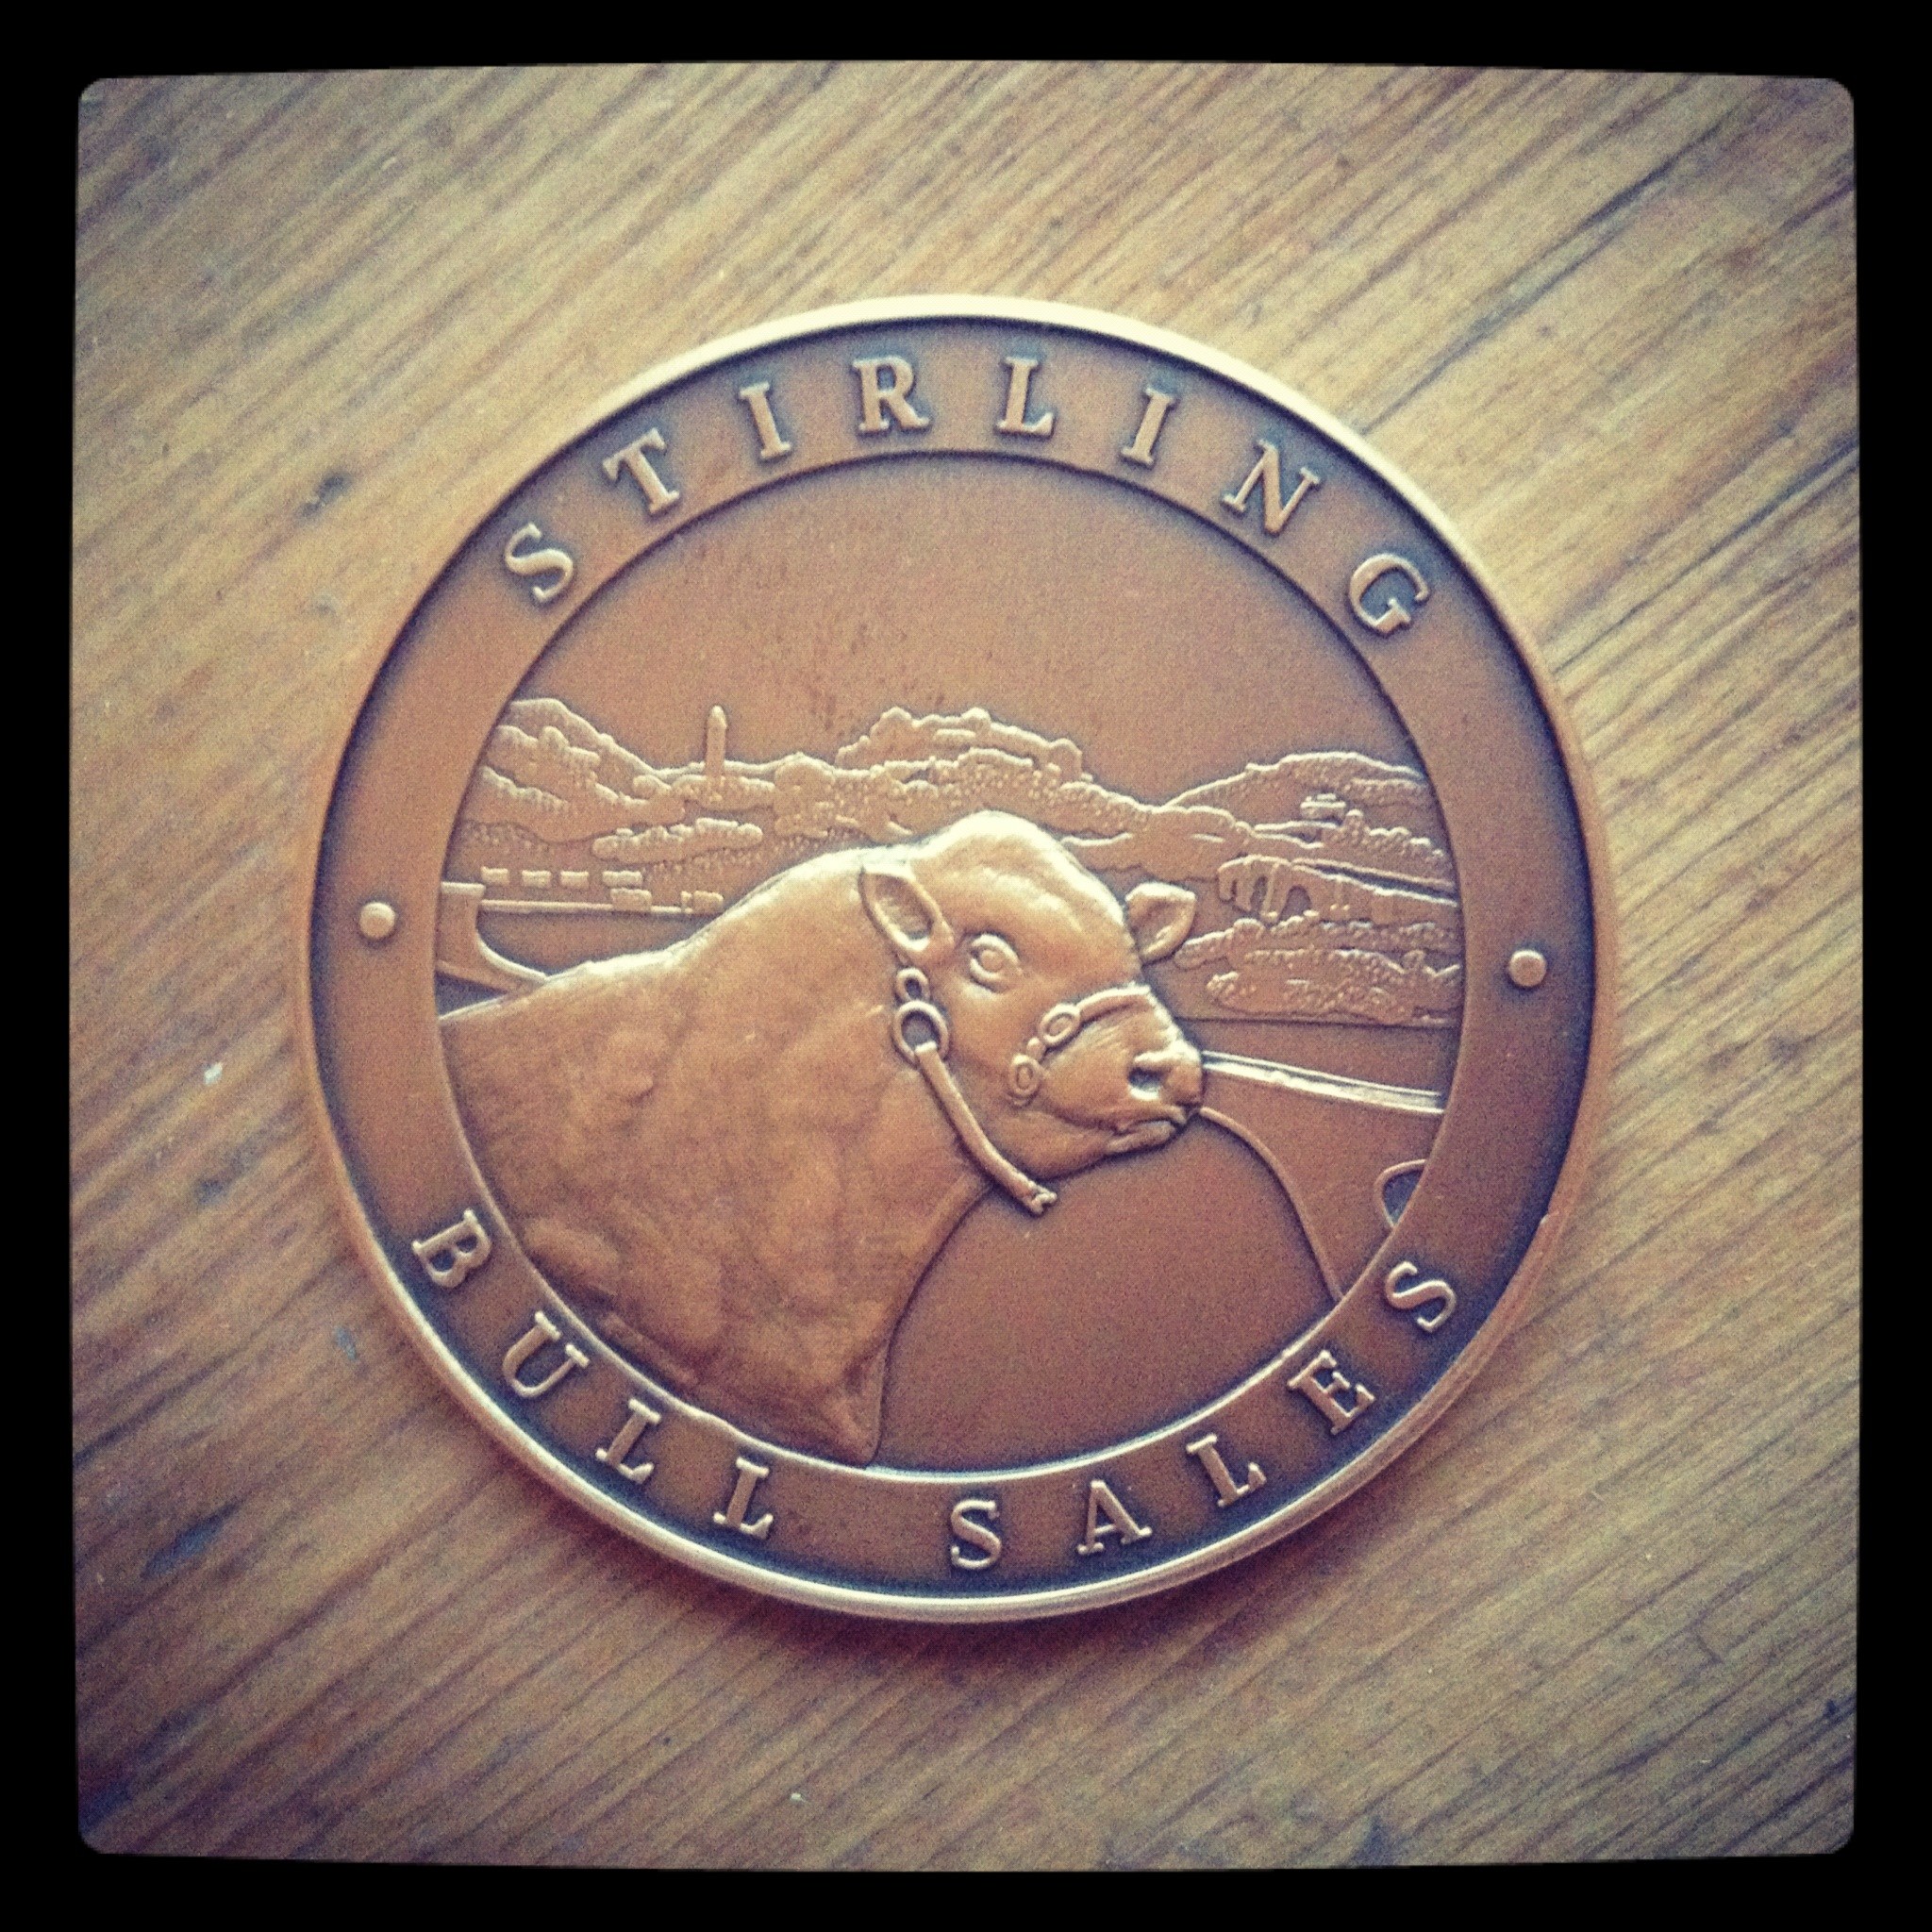 Stirling Bull Sales Medal